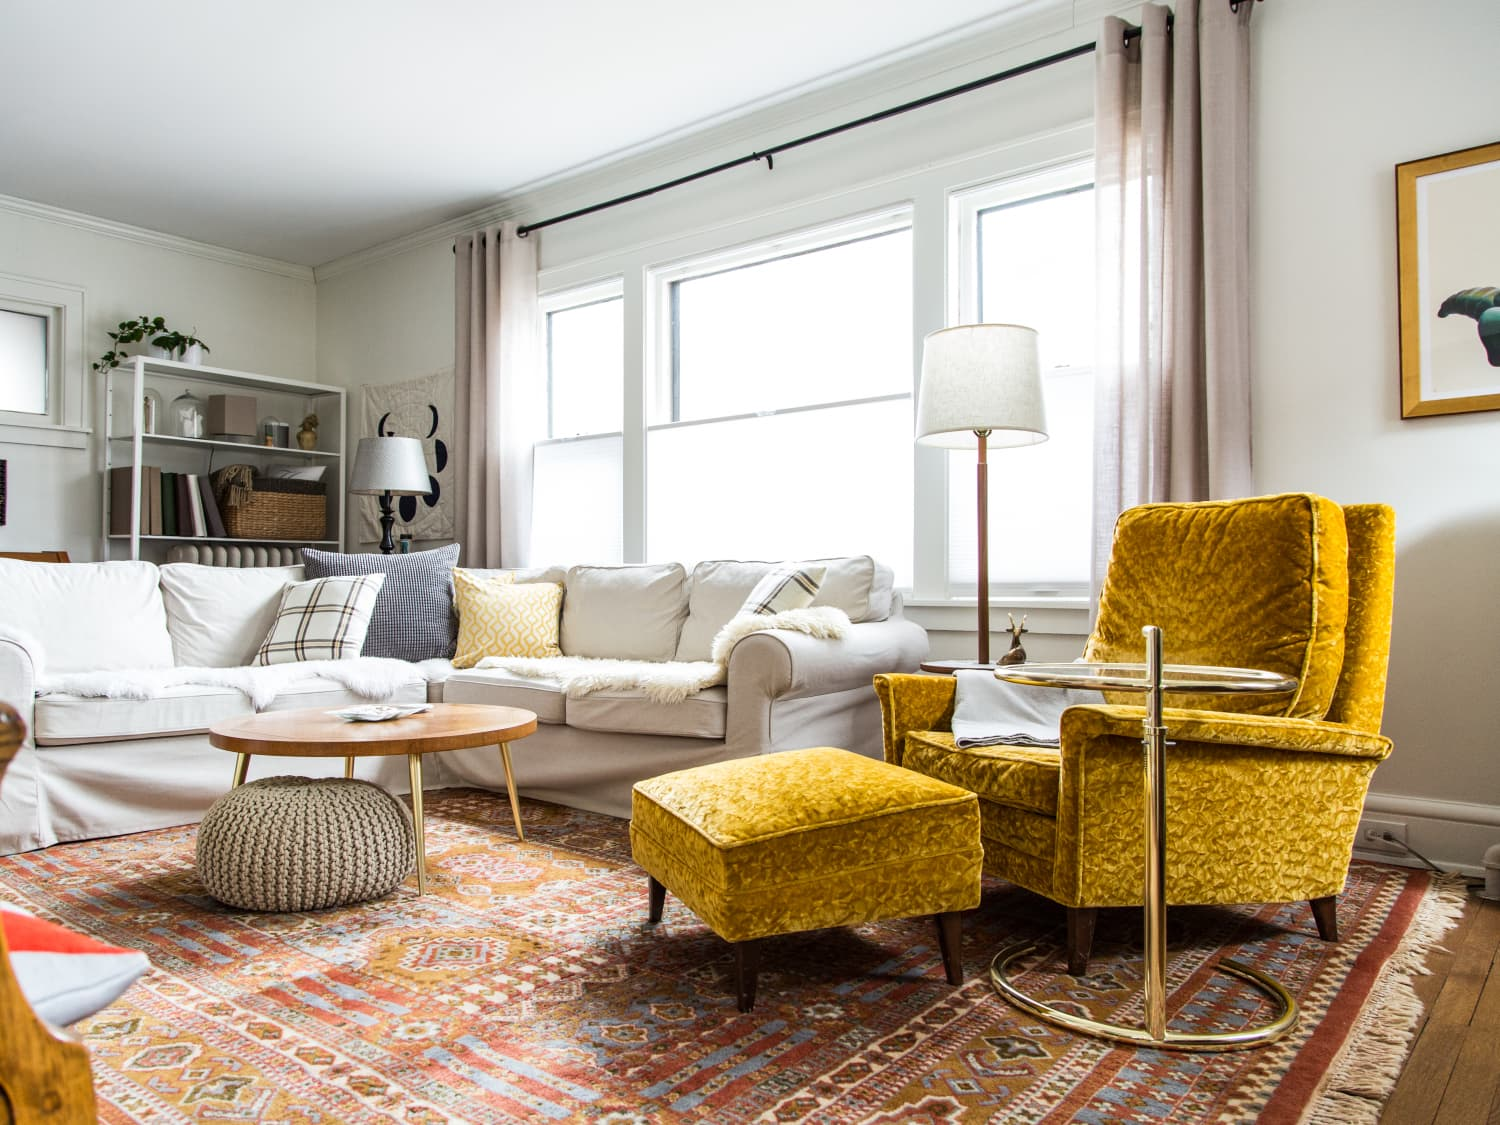 The Best Places To Buy Used And Vintage Furniture Online Apartment Therapy